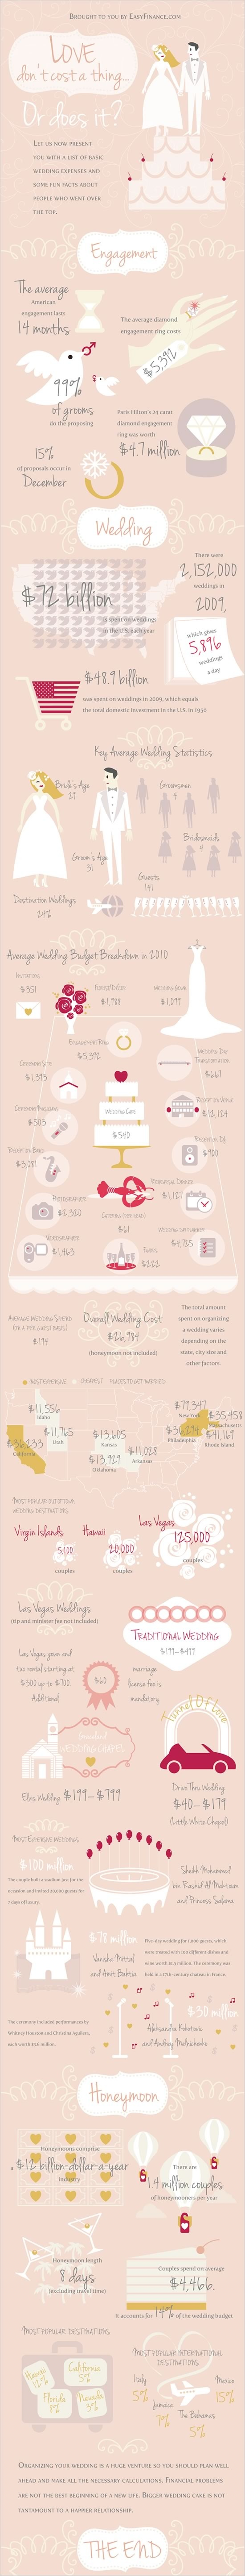 Average wedding costs. Click on the picture for full infographic. Source: http://jayneweddingsblog.wordpress.com/ via Pinterest